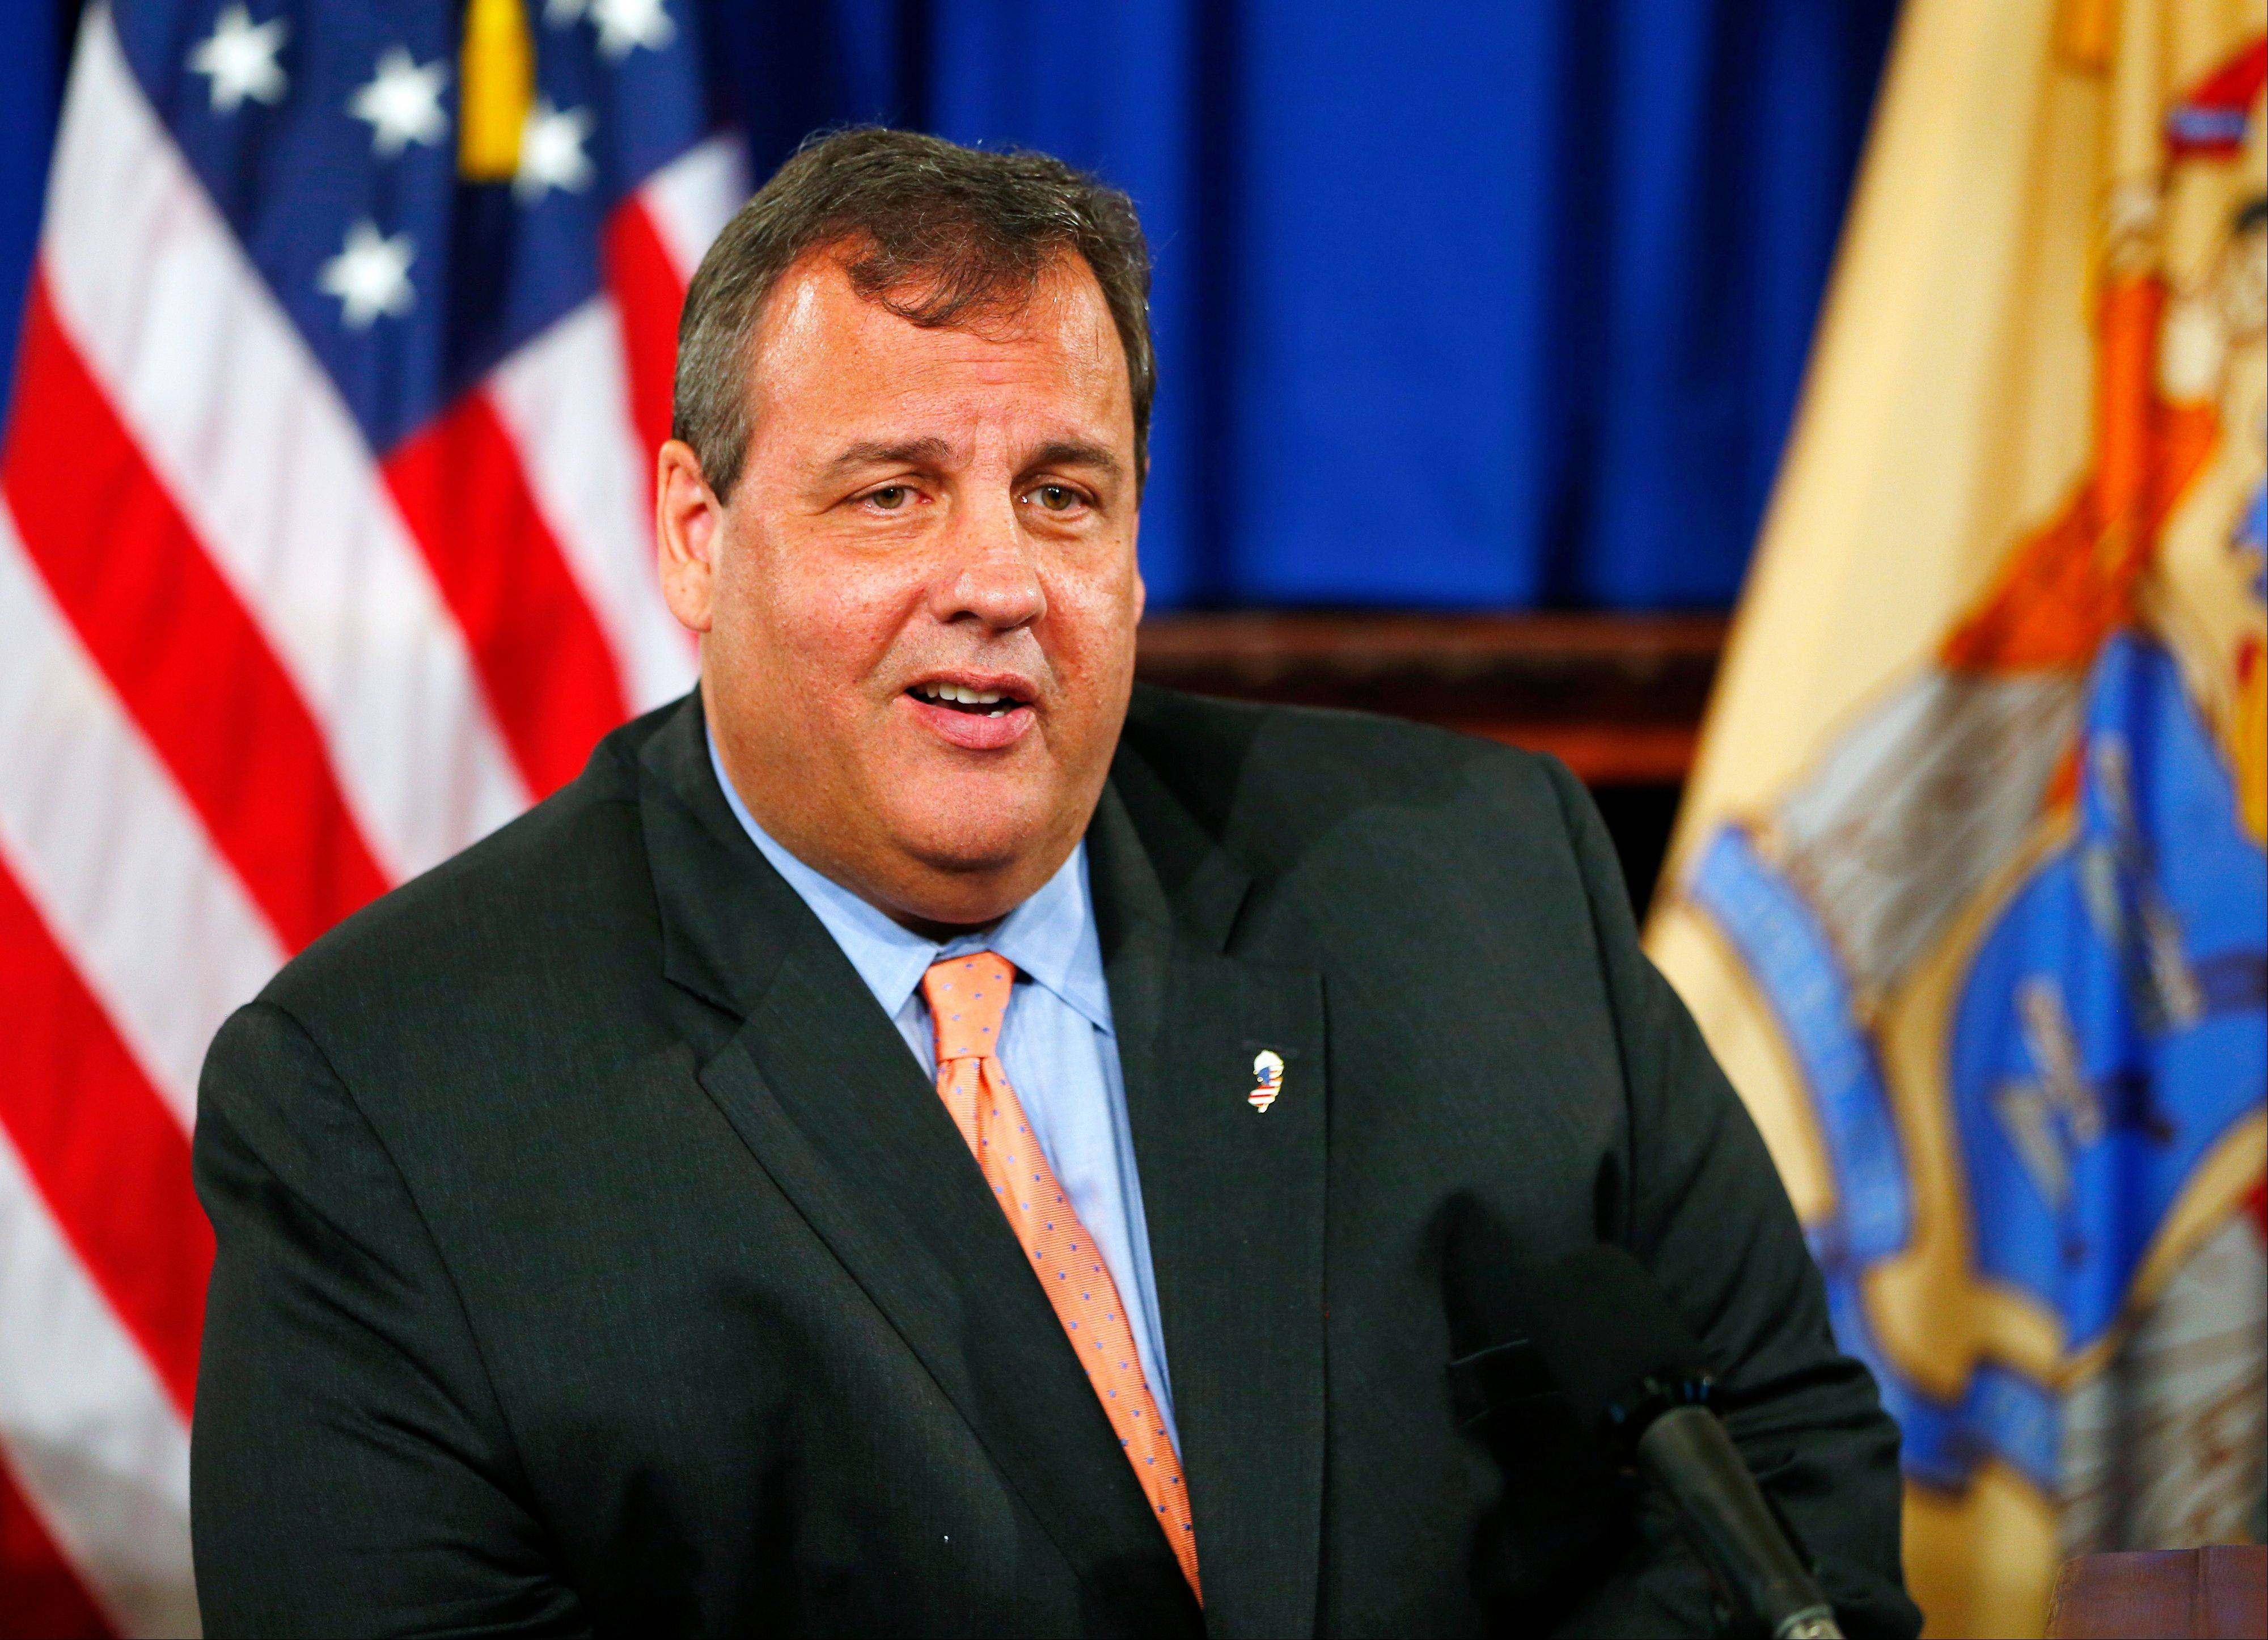 Christie to appear with Bill Clinton in Chicago